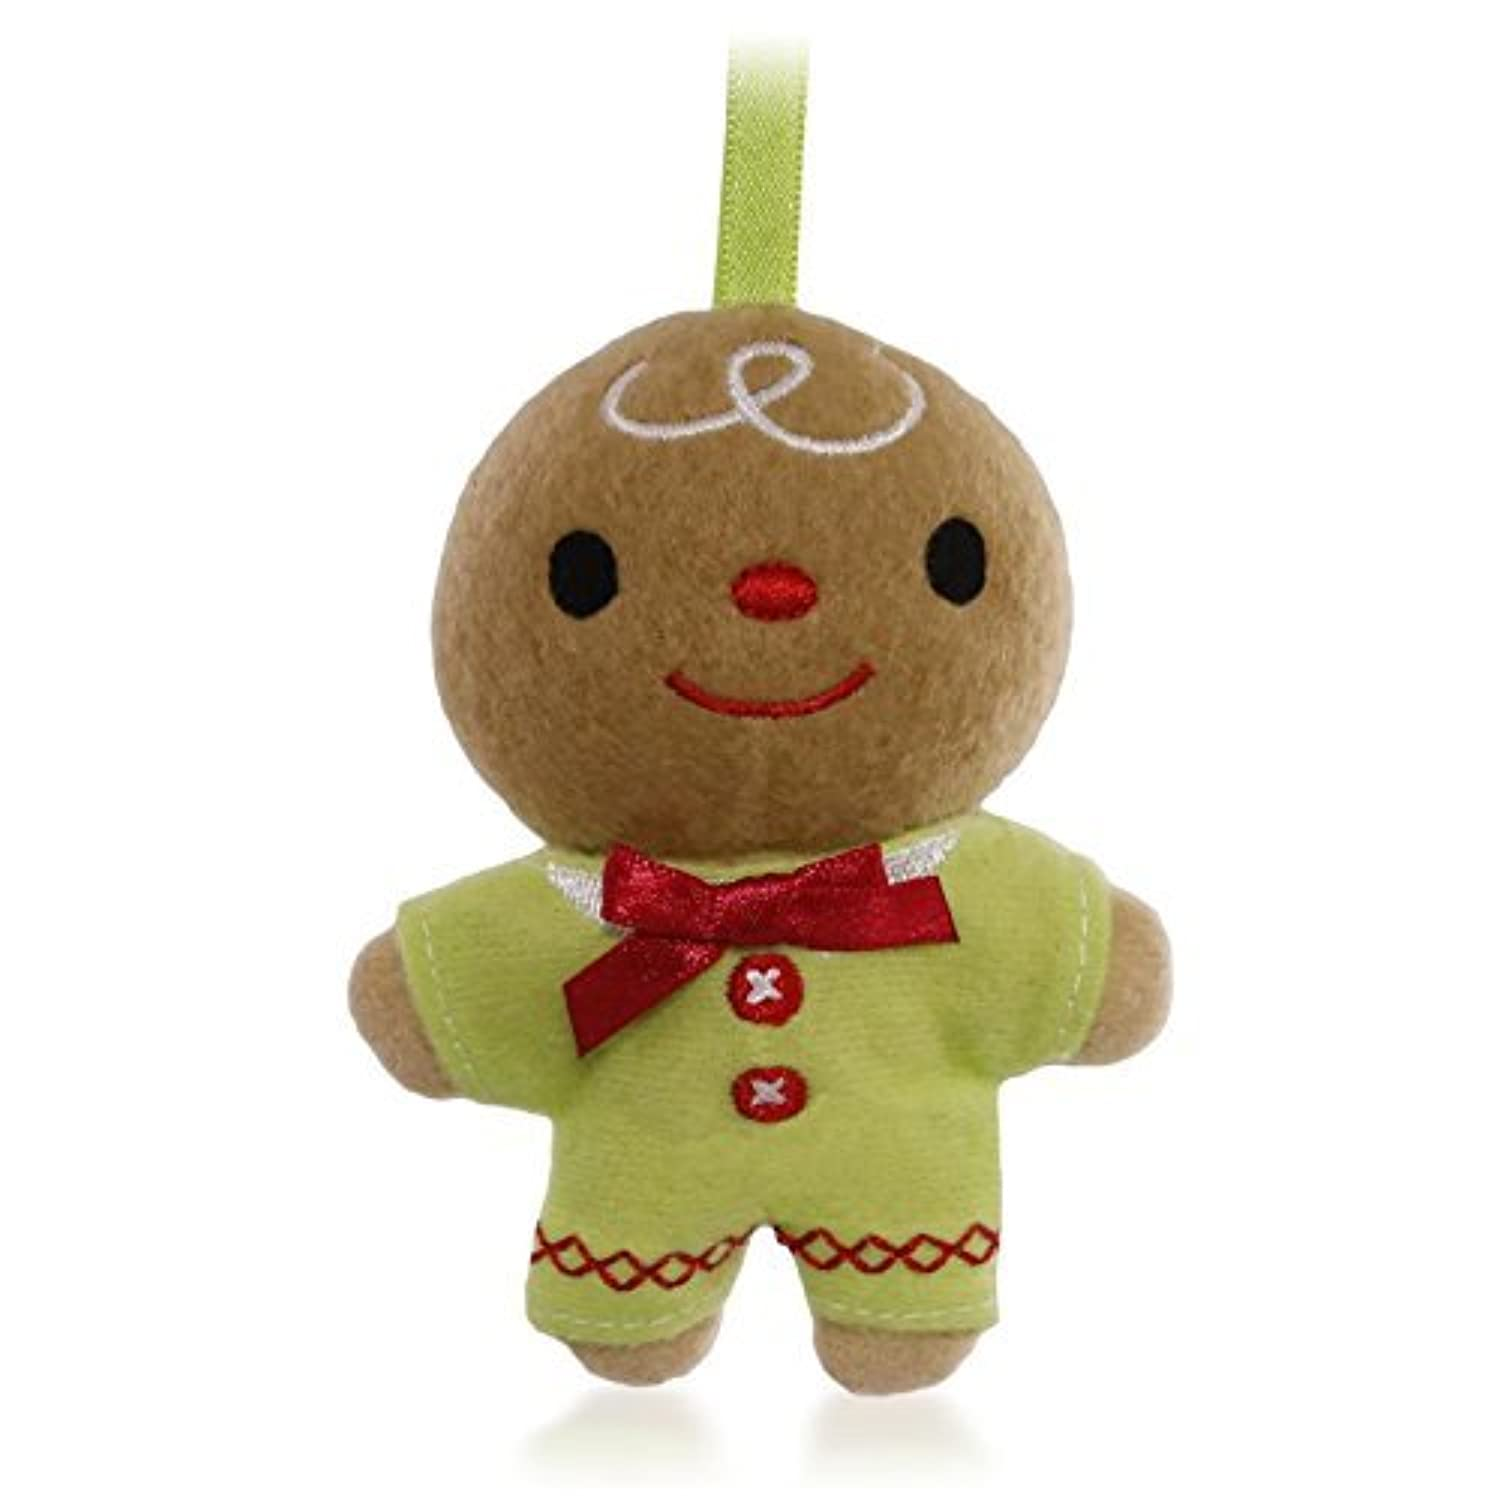 Hallmark Keepsake Kids' Ginger Boy Plush Ornament [並行輸入品]